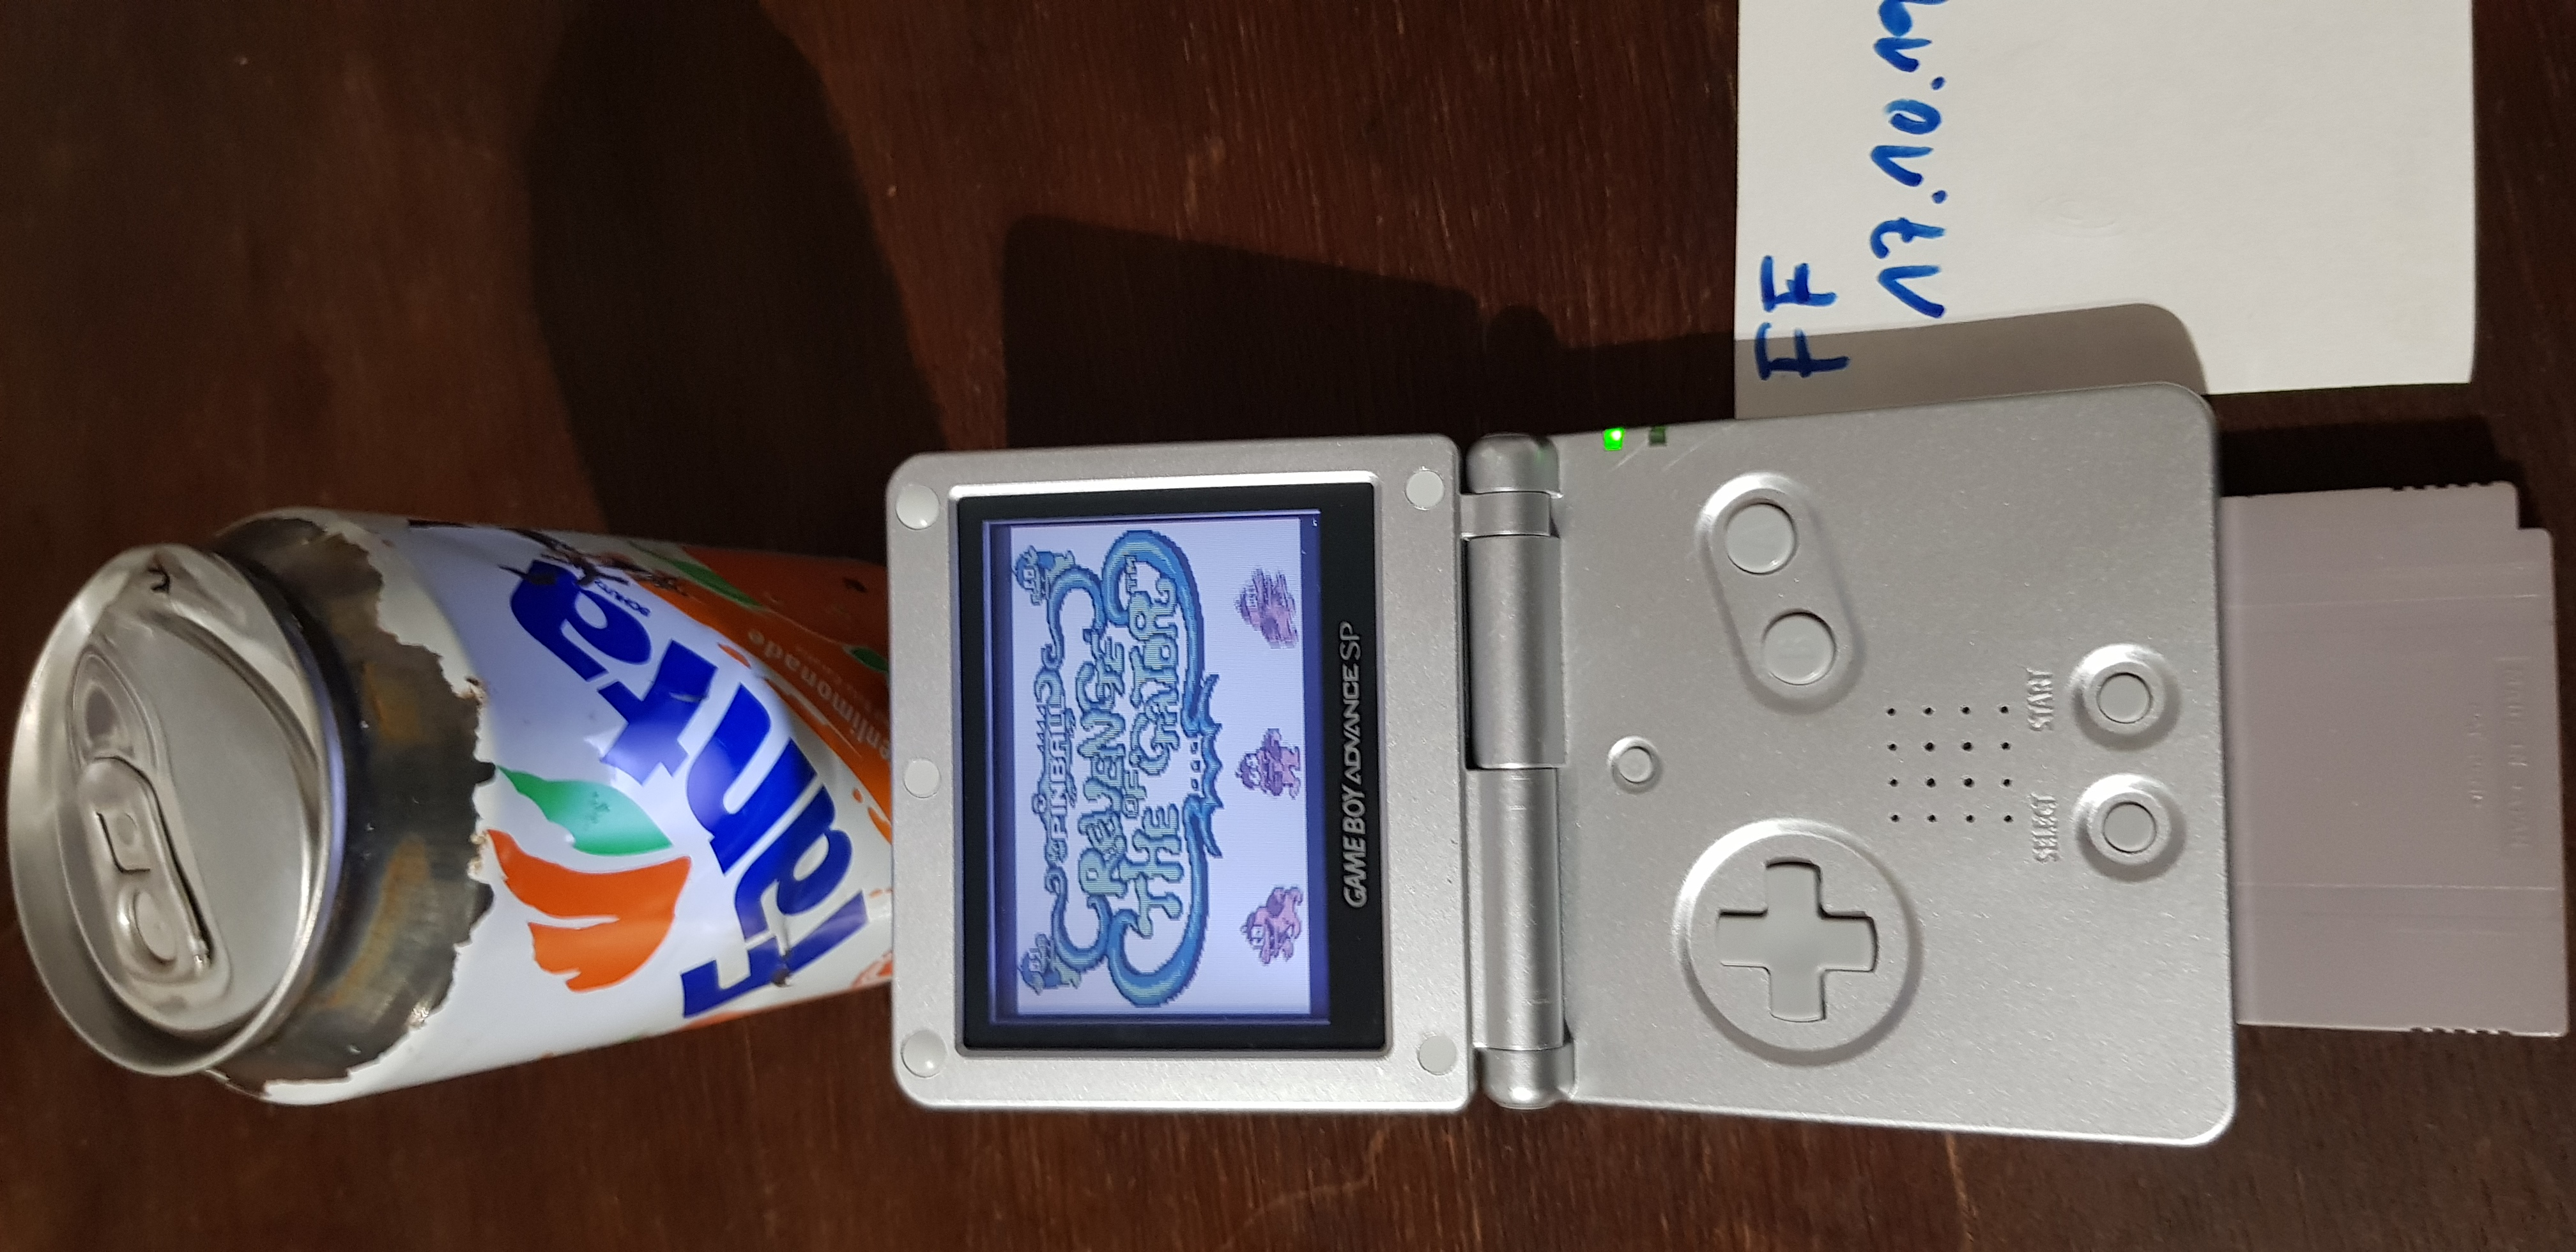 Fanta: Pinball: Revenge of the Gator (Game Boy) 1,036,440 points on 2019-10-17 00:12:45